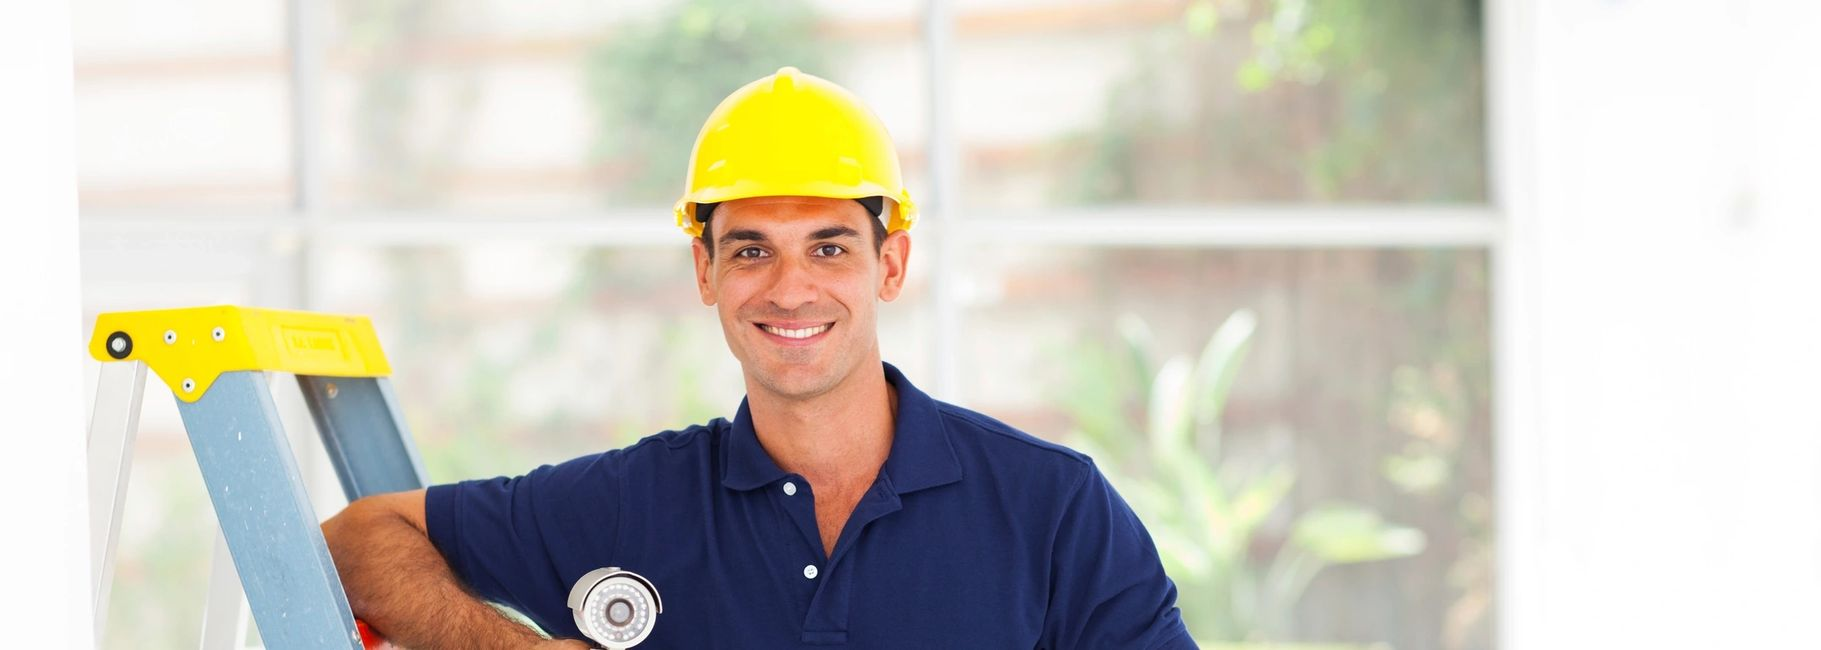 residential electrician electrical service Steinman electric certified electrician